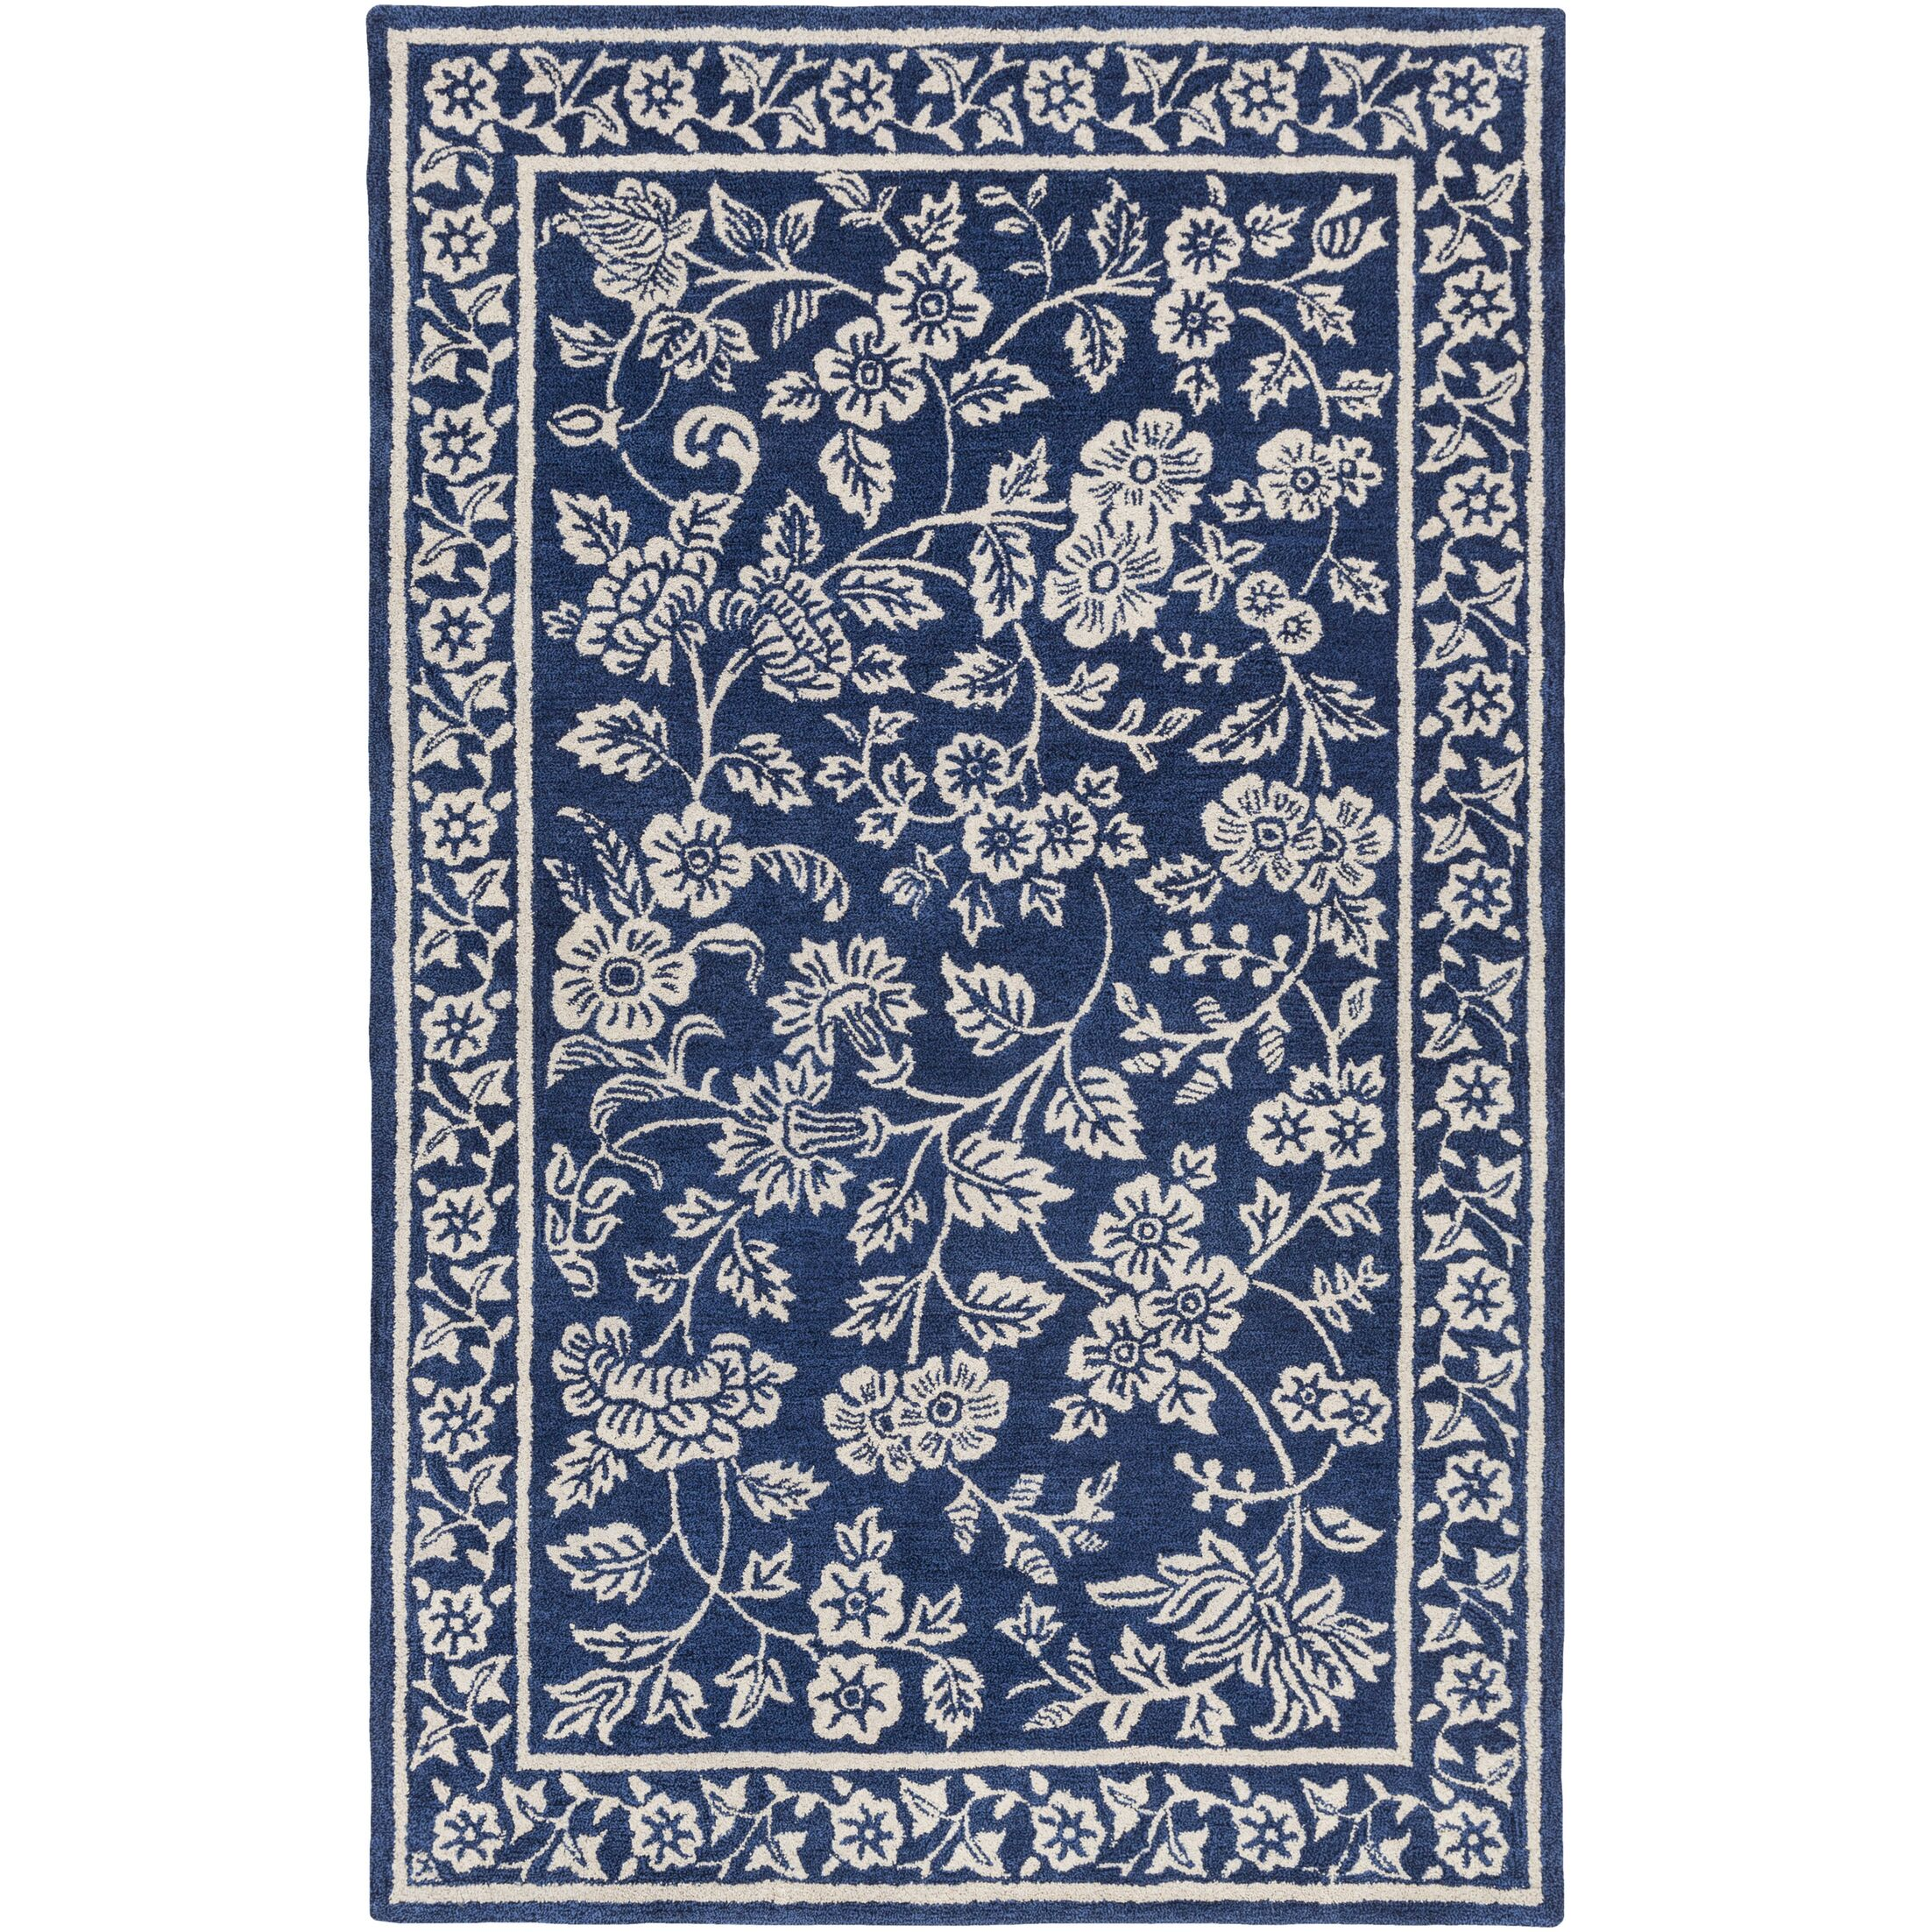 Smithsonian Hand-Tufted Blue/Black Area Rug Rug Size: Rectangle 8' x 11'